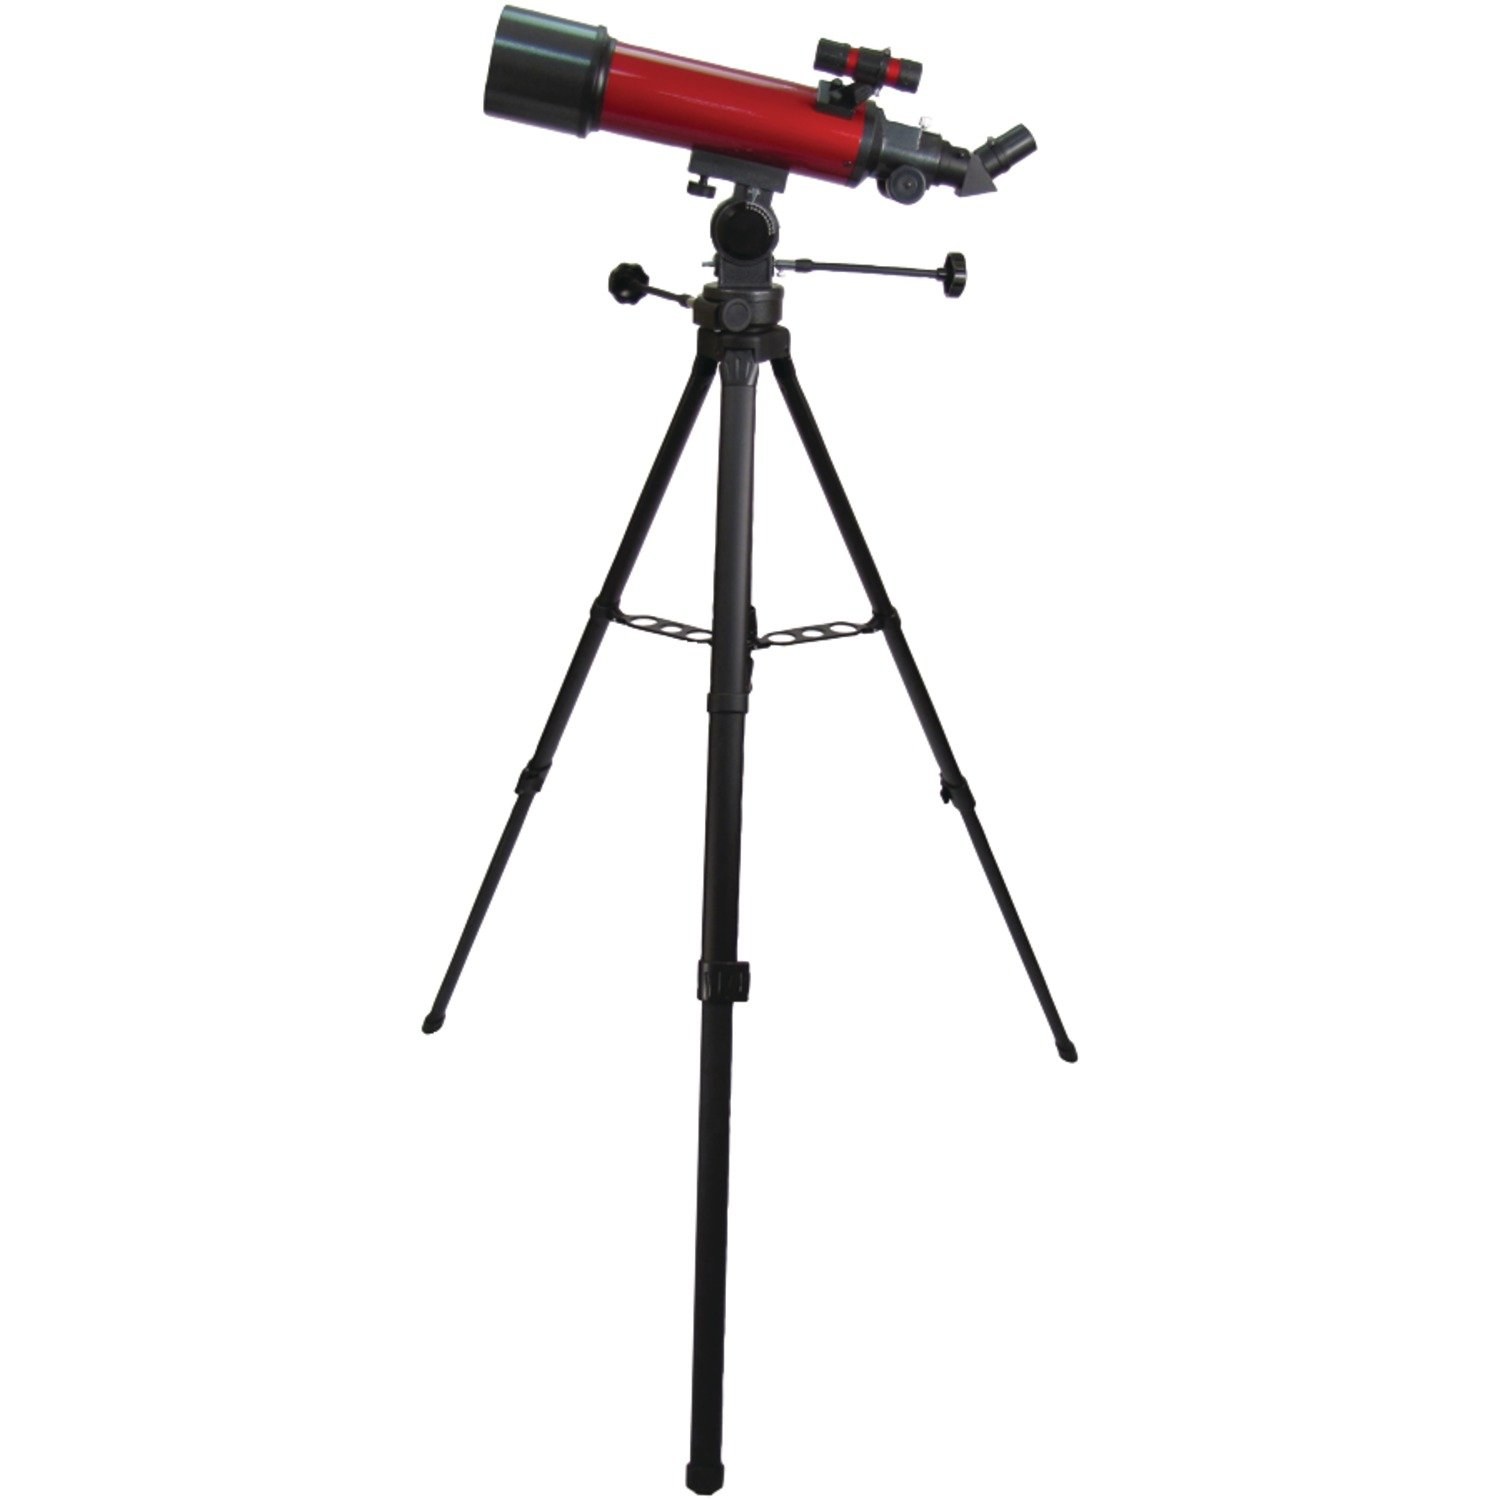 Carson Red Planet 25-56x80mm Refractor Telescope (RP-200) by Carson